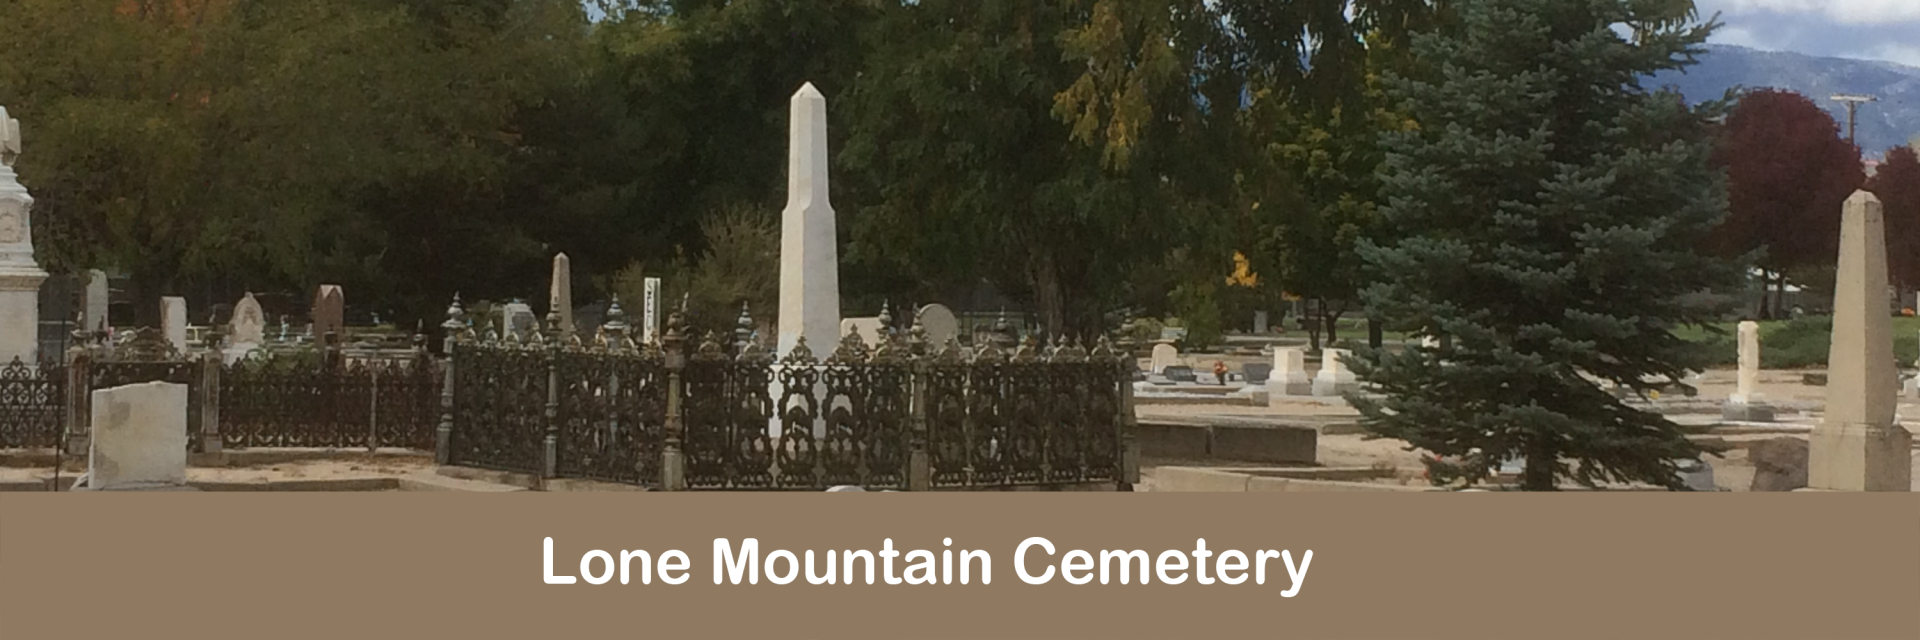 LoneMountainCemetery